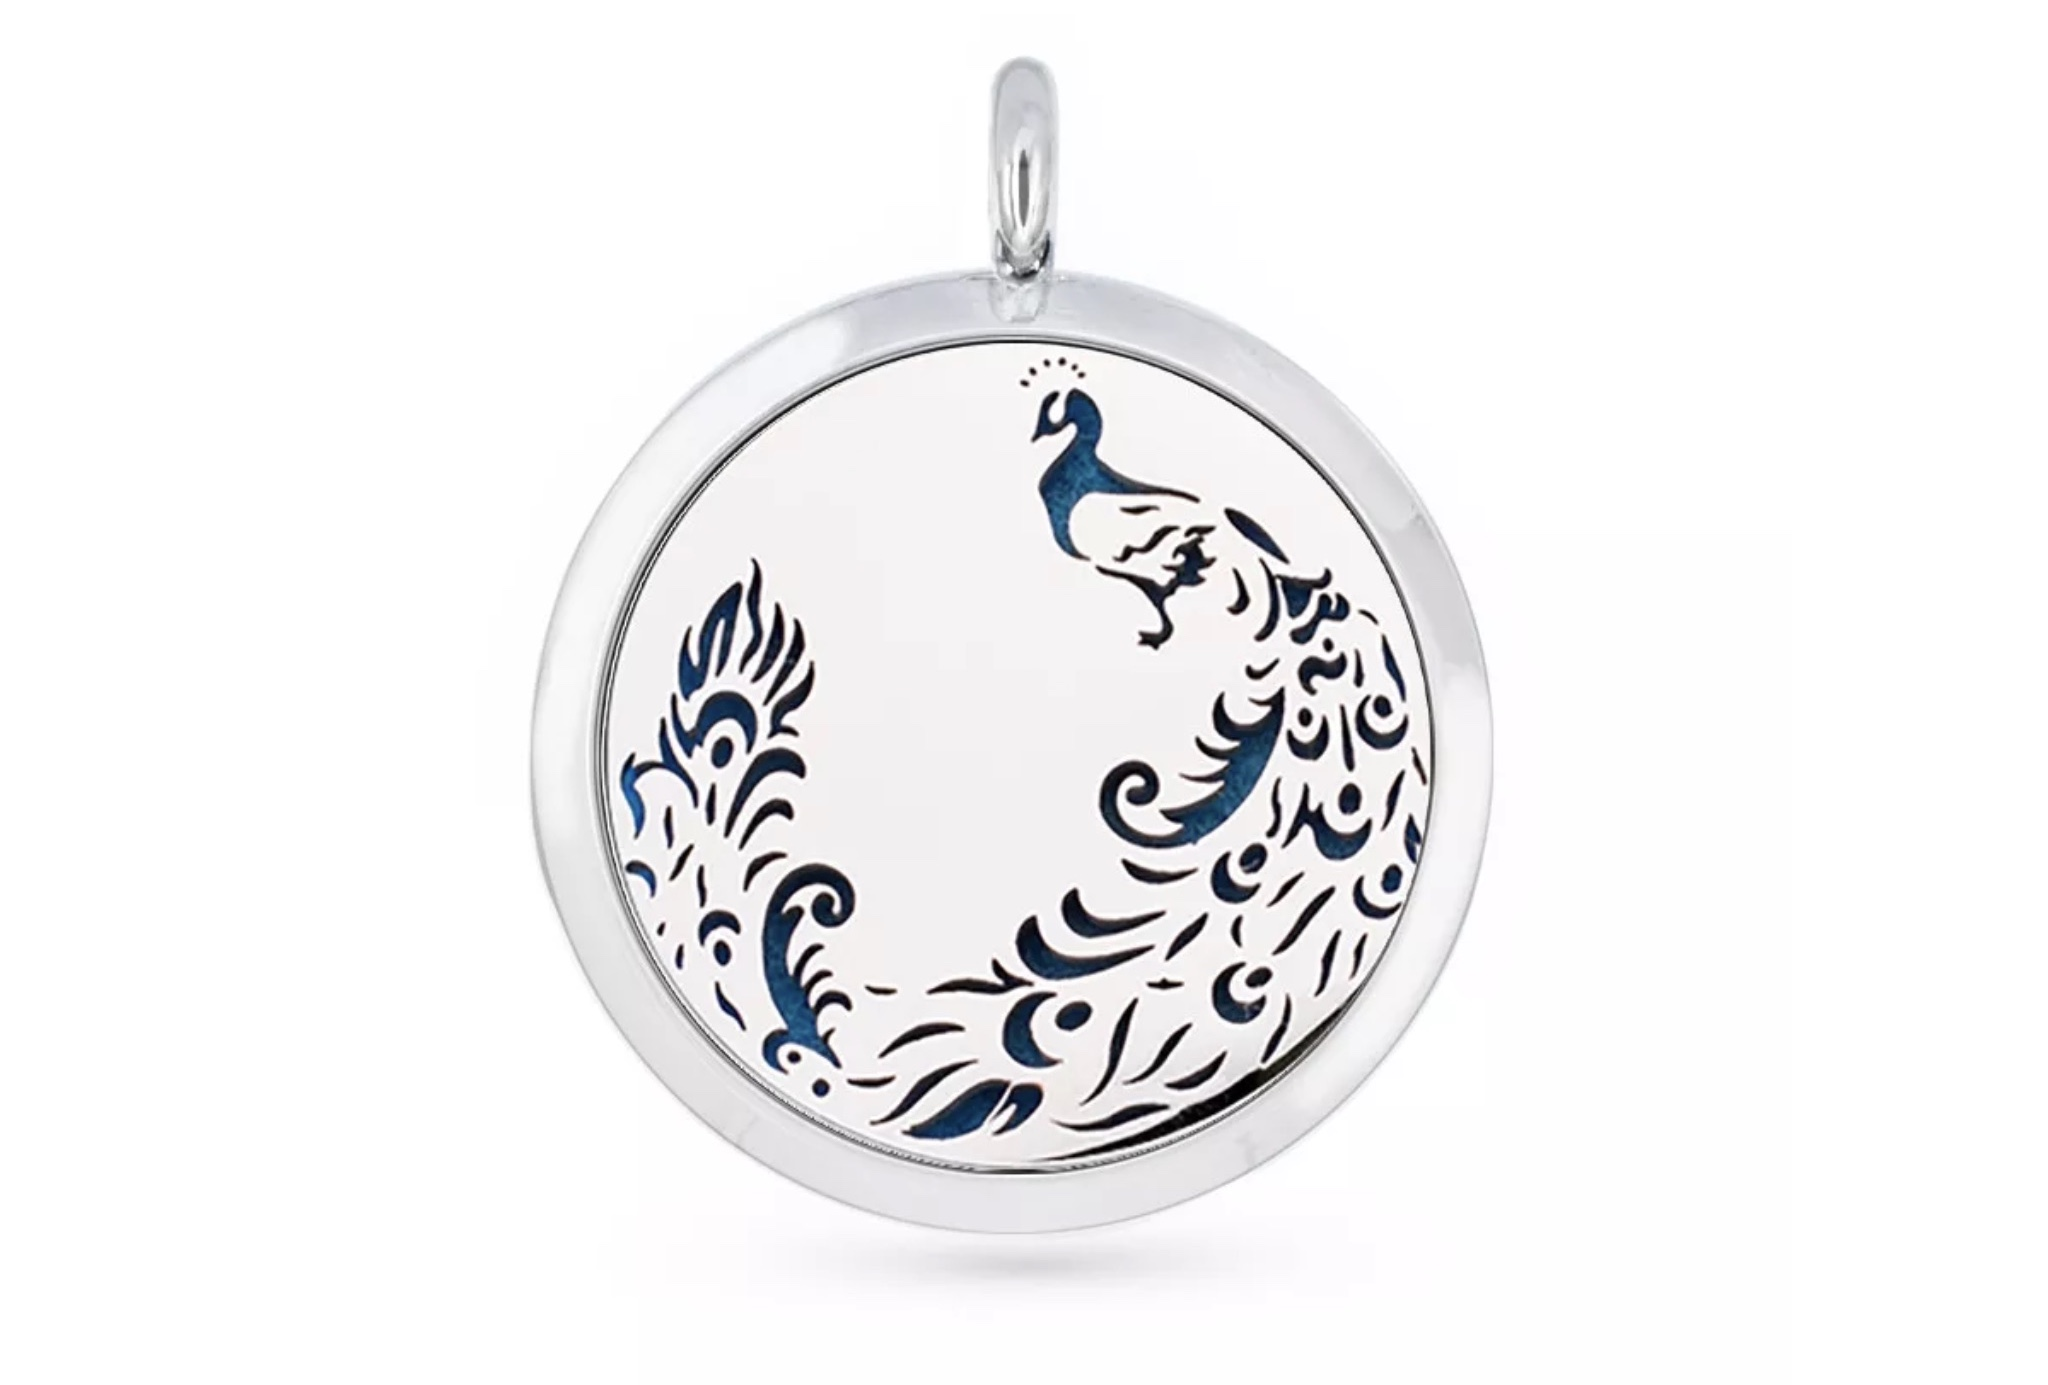 Aromatherapy Diffuser Pendant - Peacock - 30mm